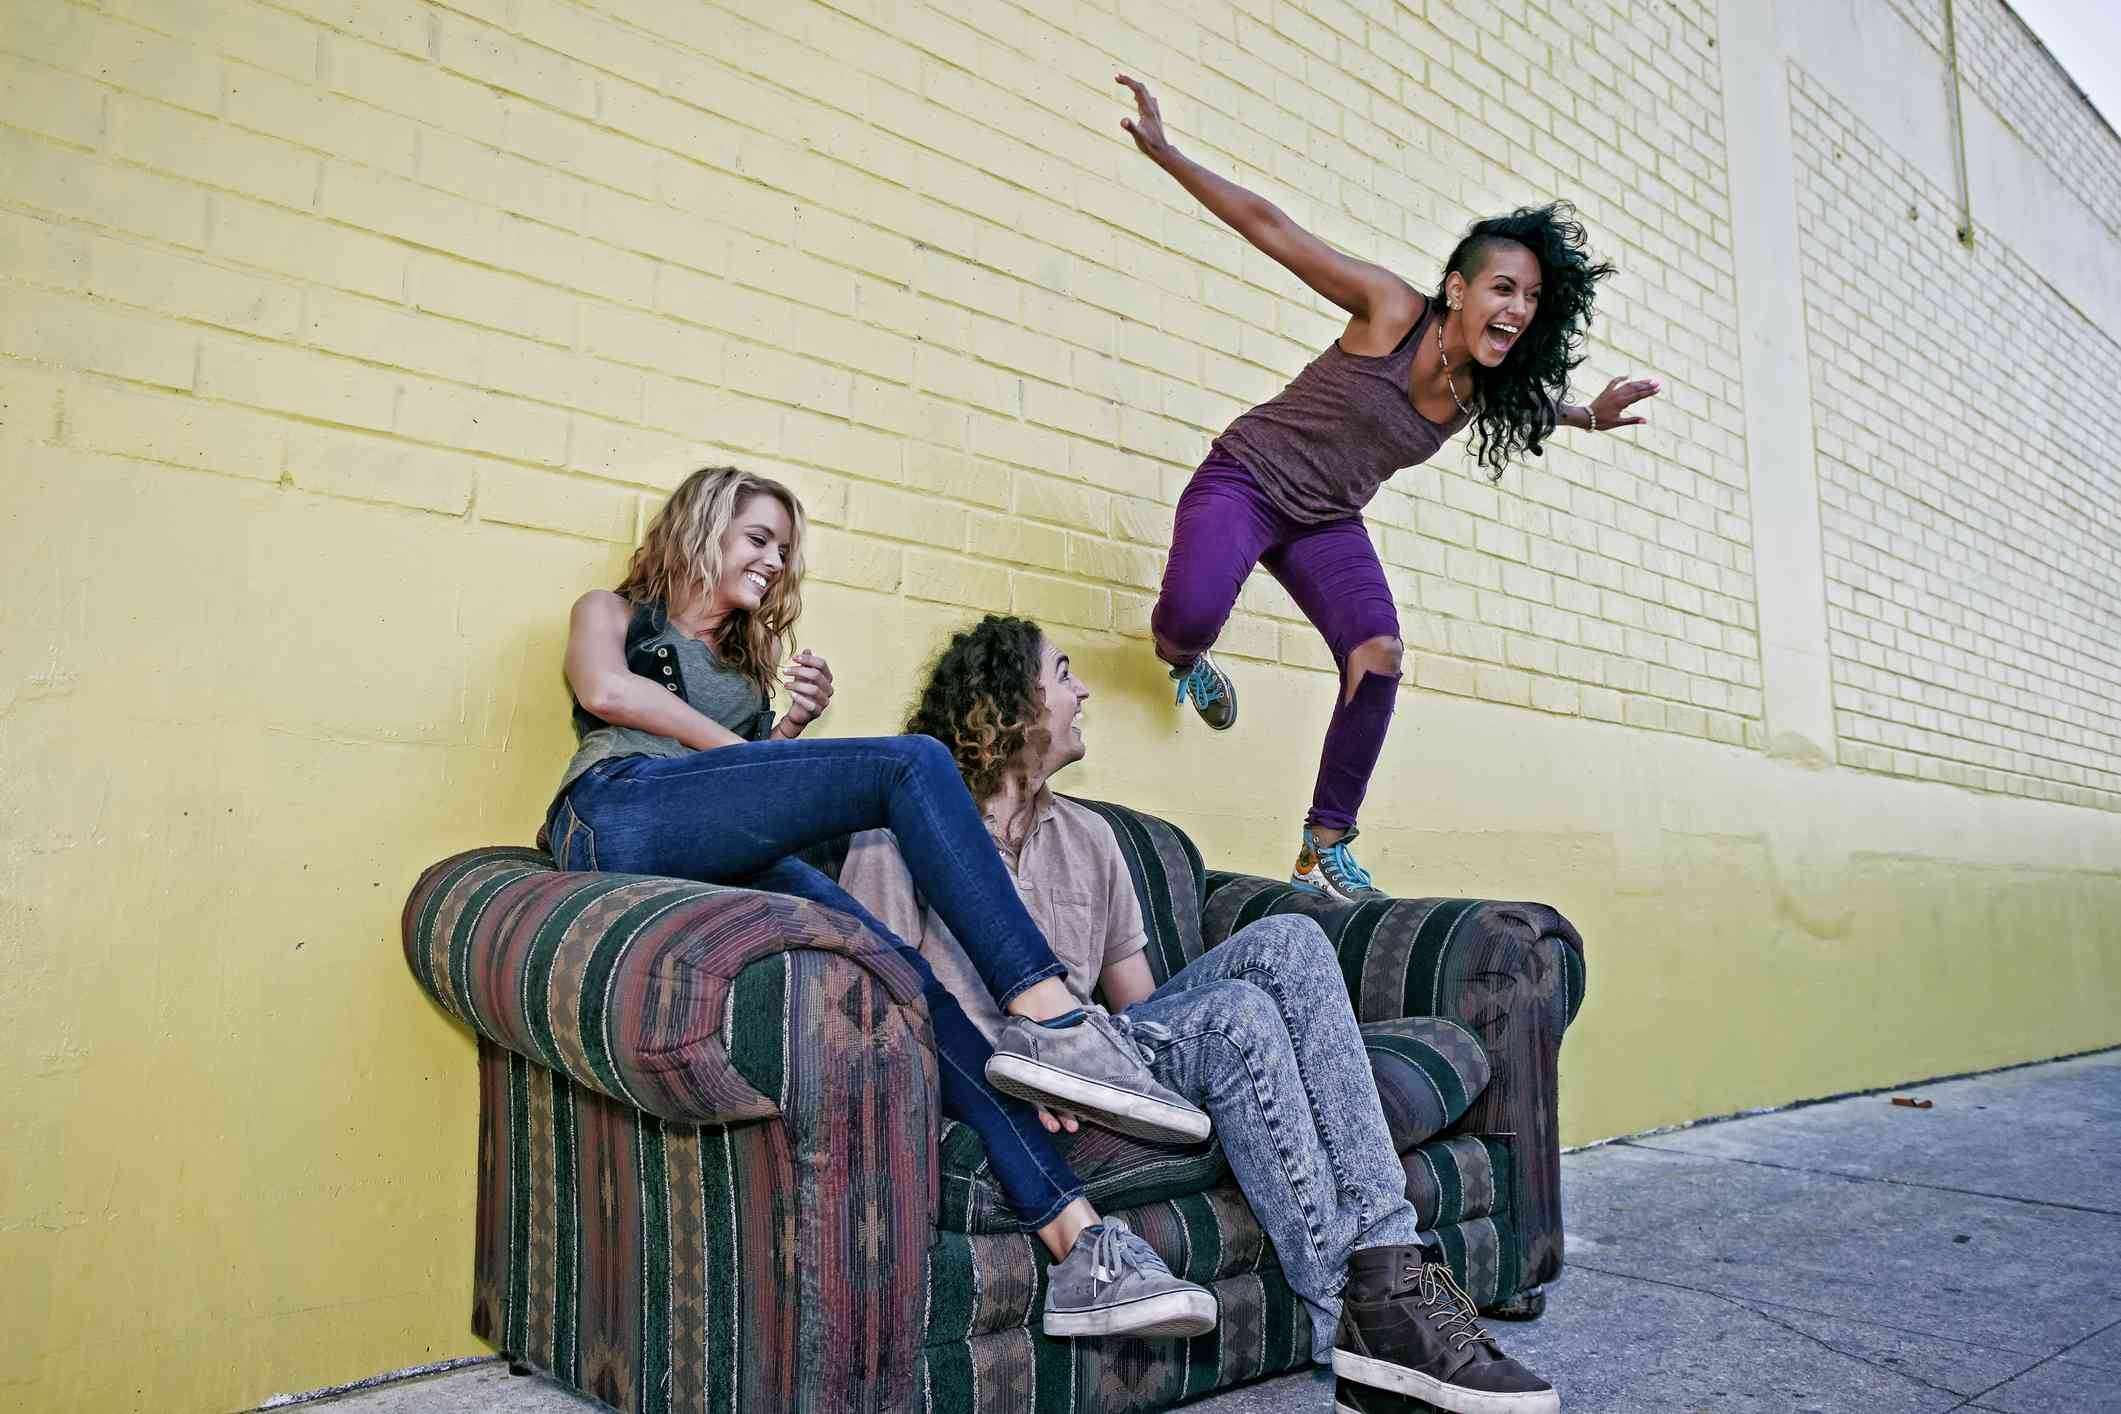 Woman jumps from sofa, friends watch on